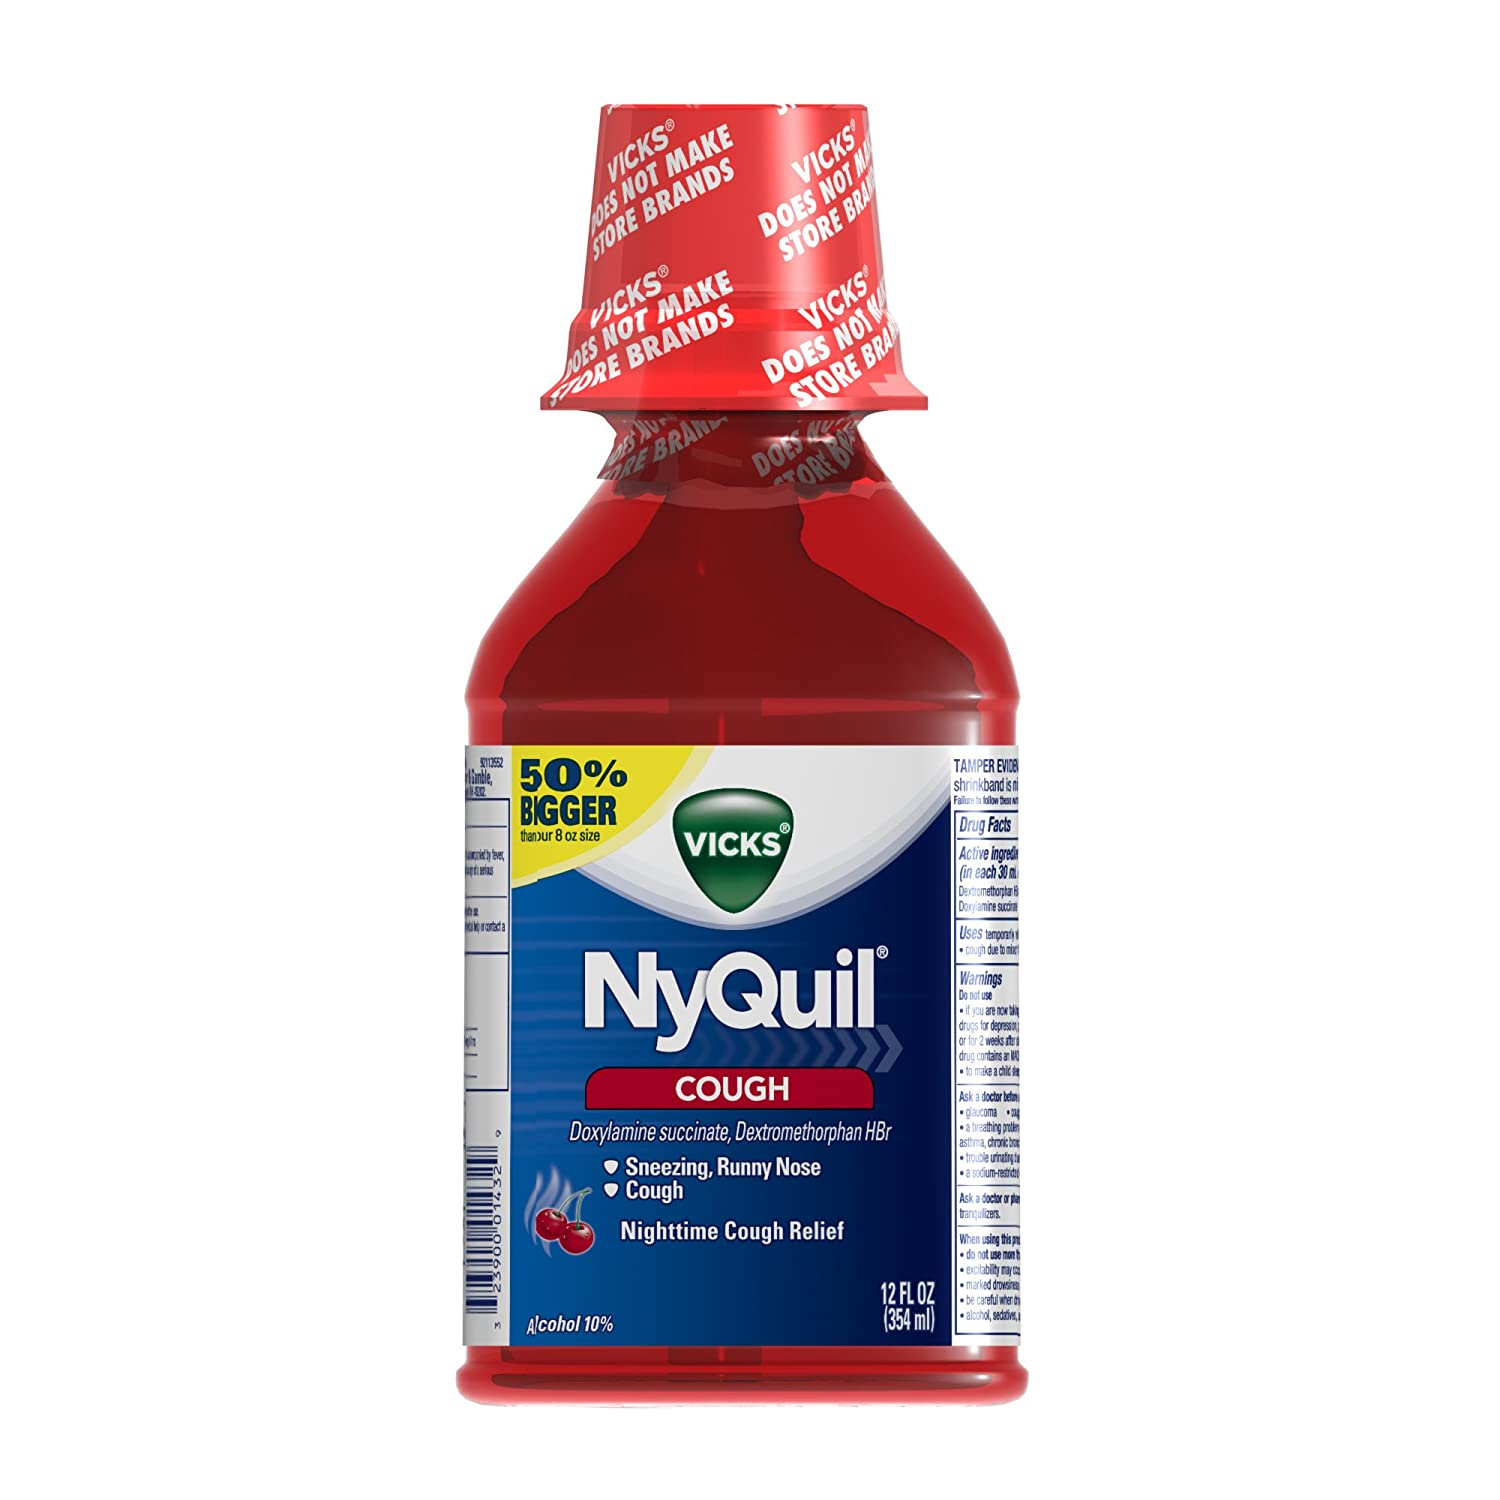 amazon com vicks nyquil cough nighttime relief cherry flavor liquid